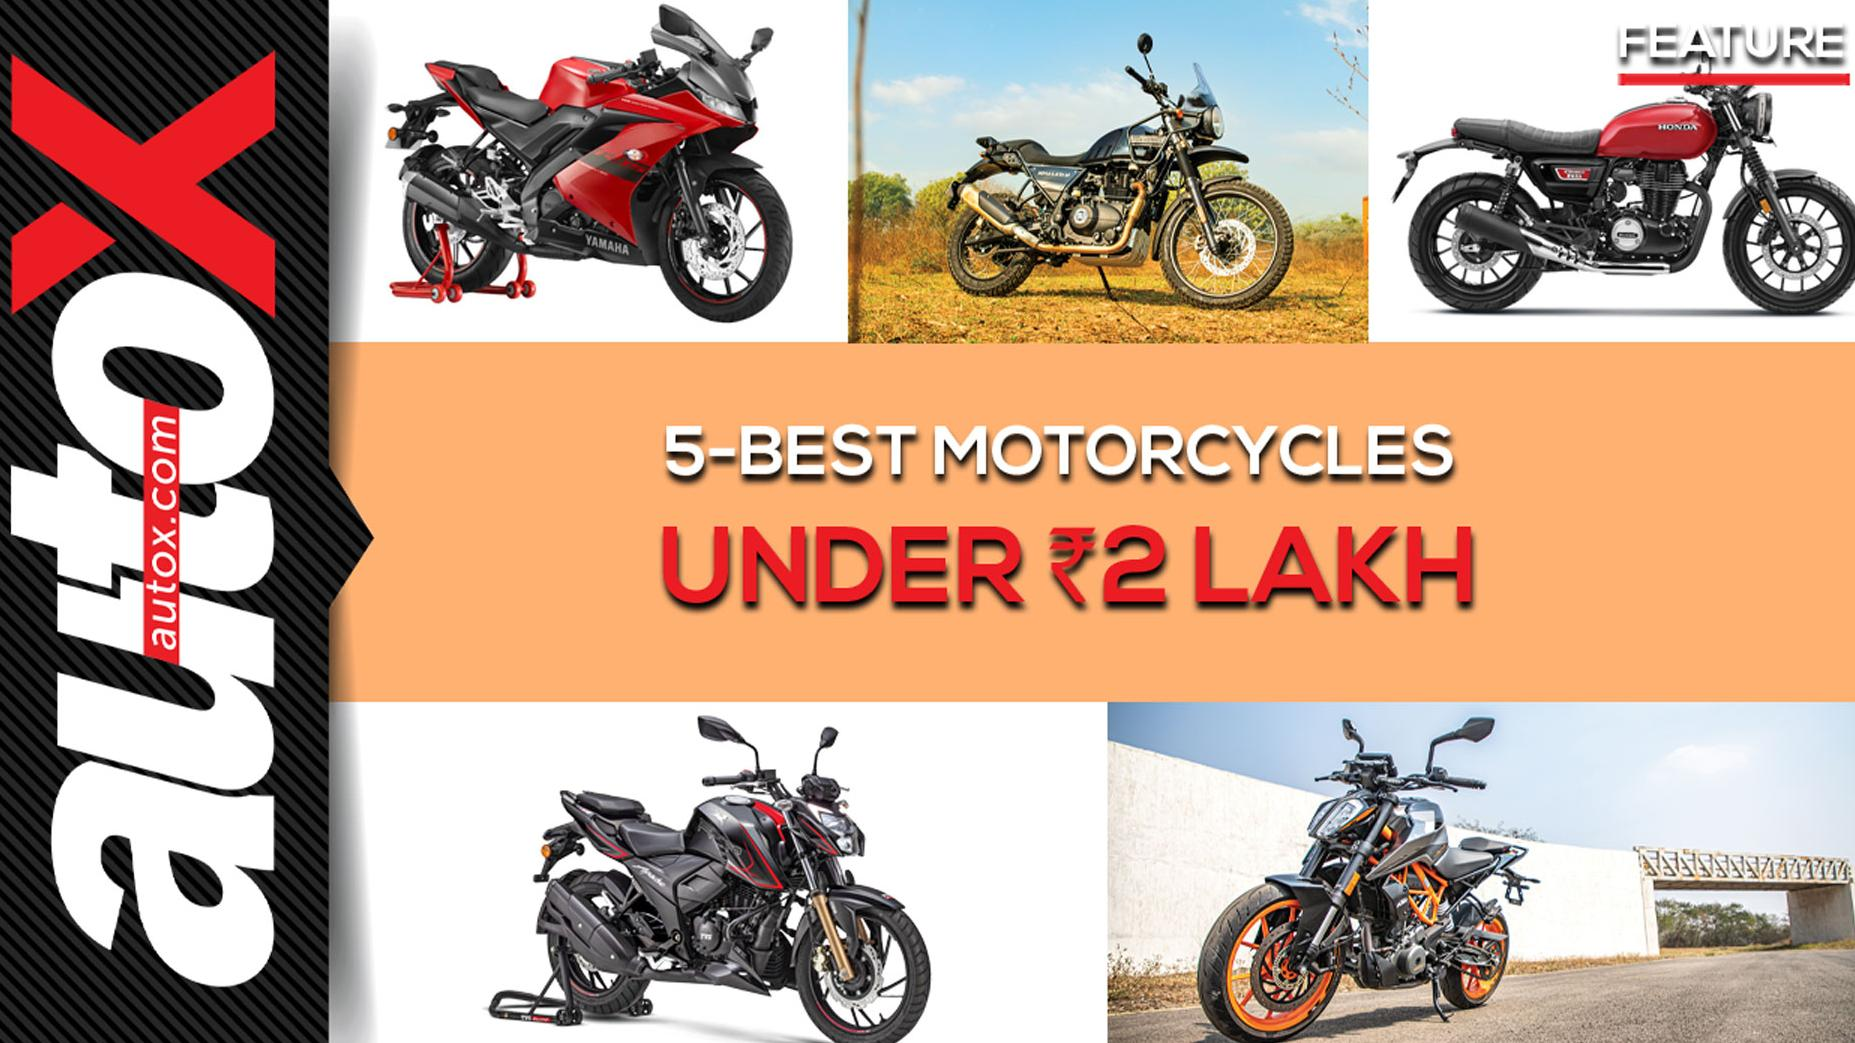 5 Best Motorcycles under Rs 2 Lakh: 2021 | autoX